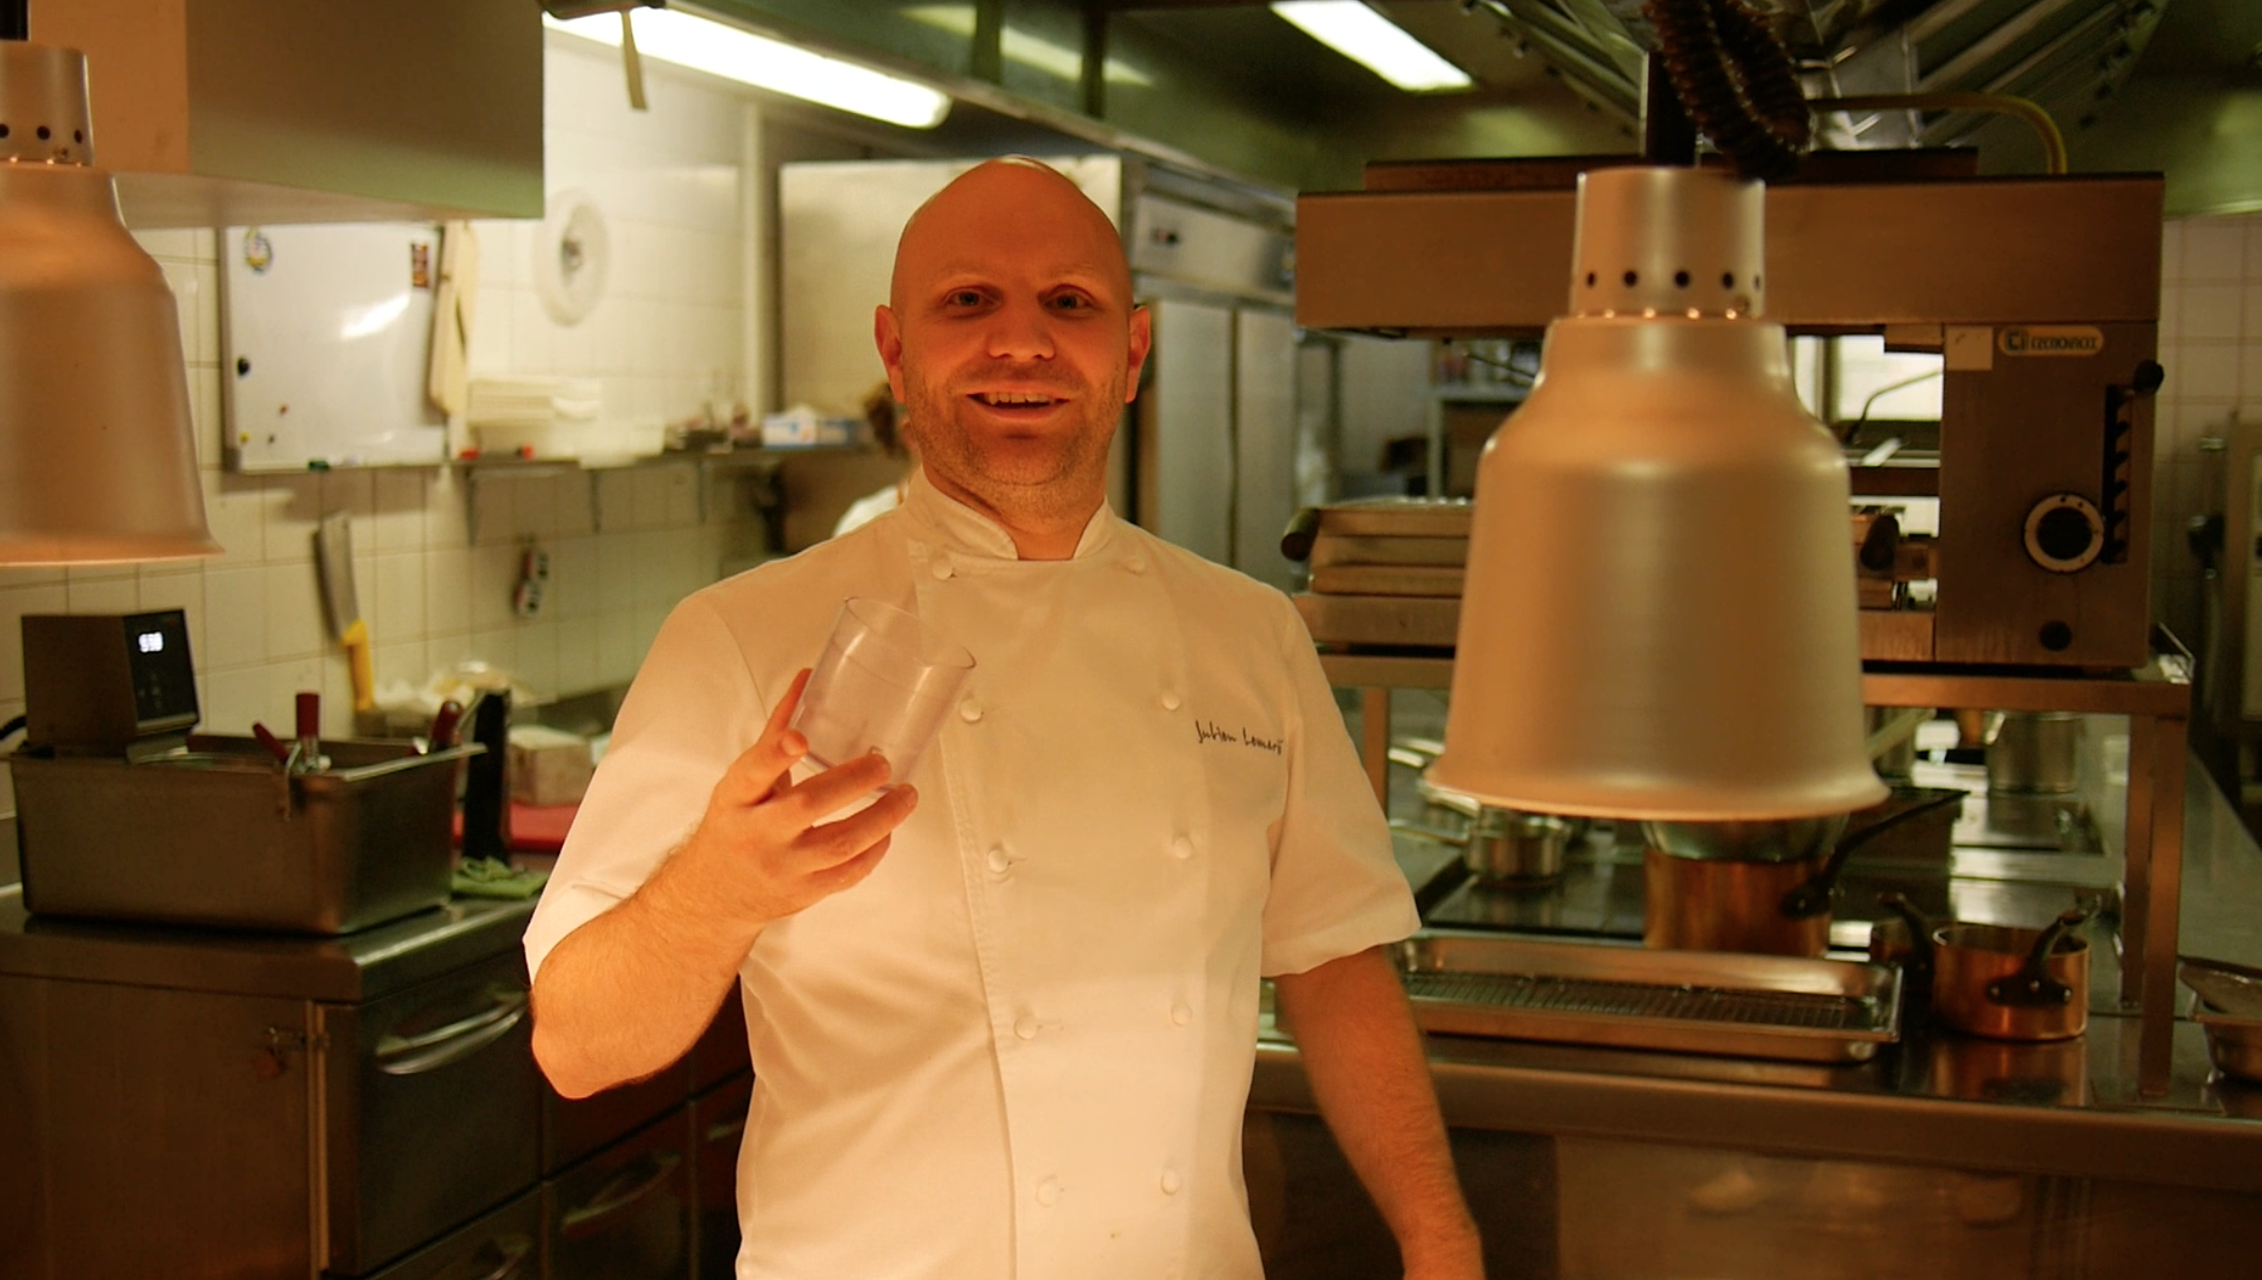 Julien Lemarié, chef at La Coquerie*